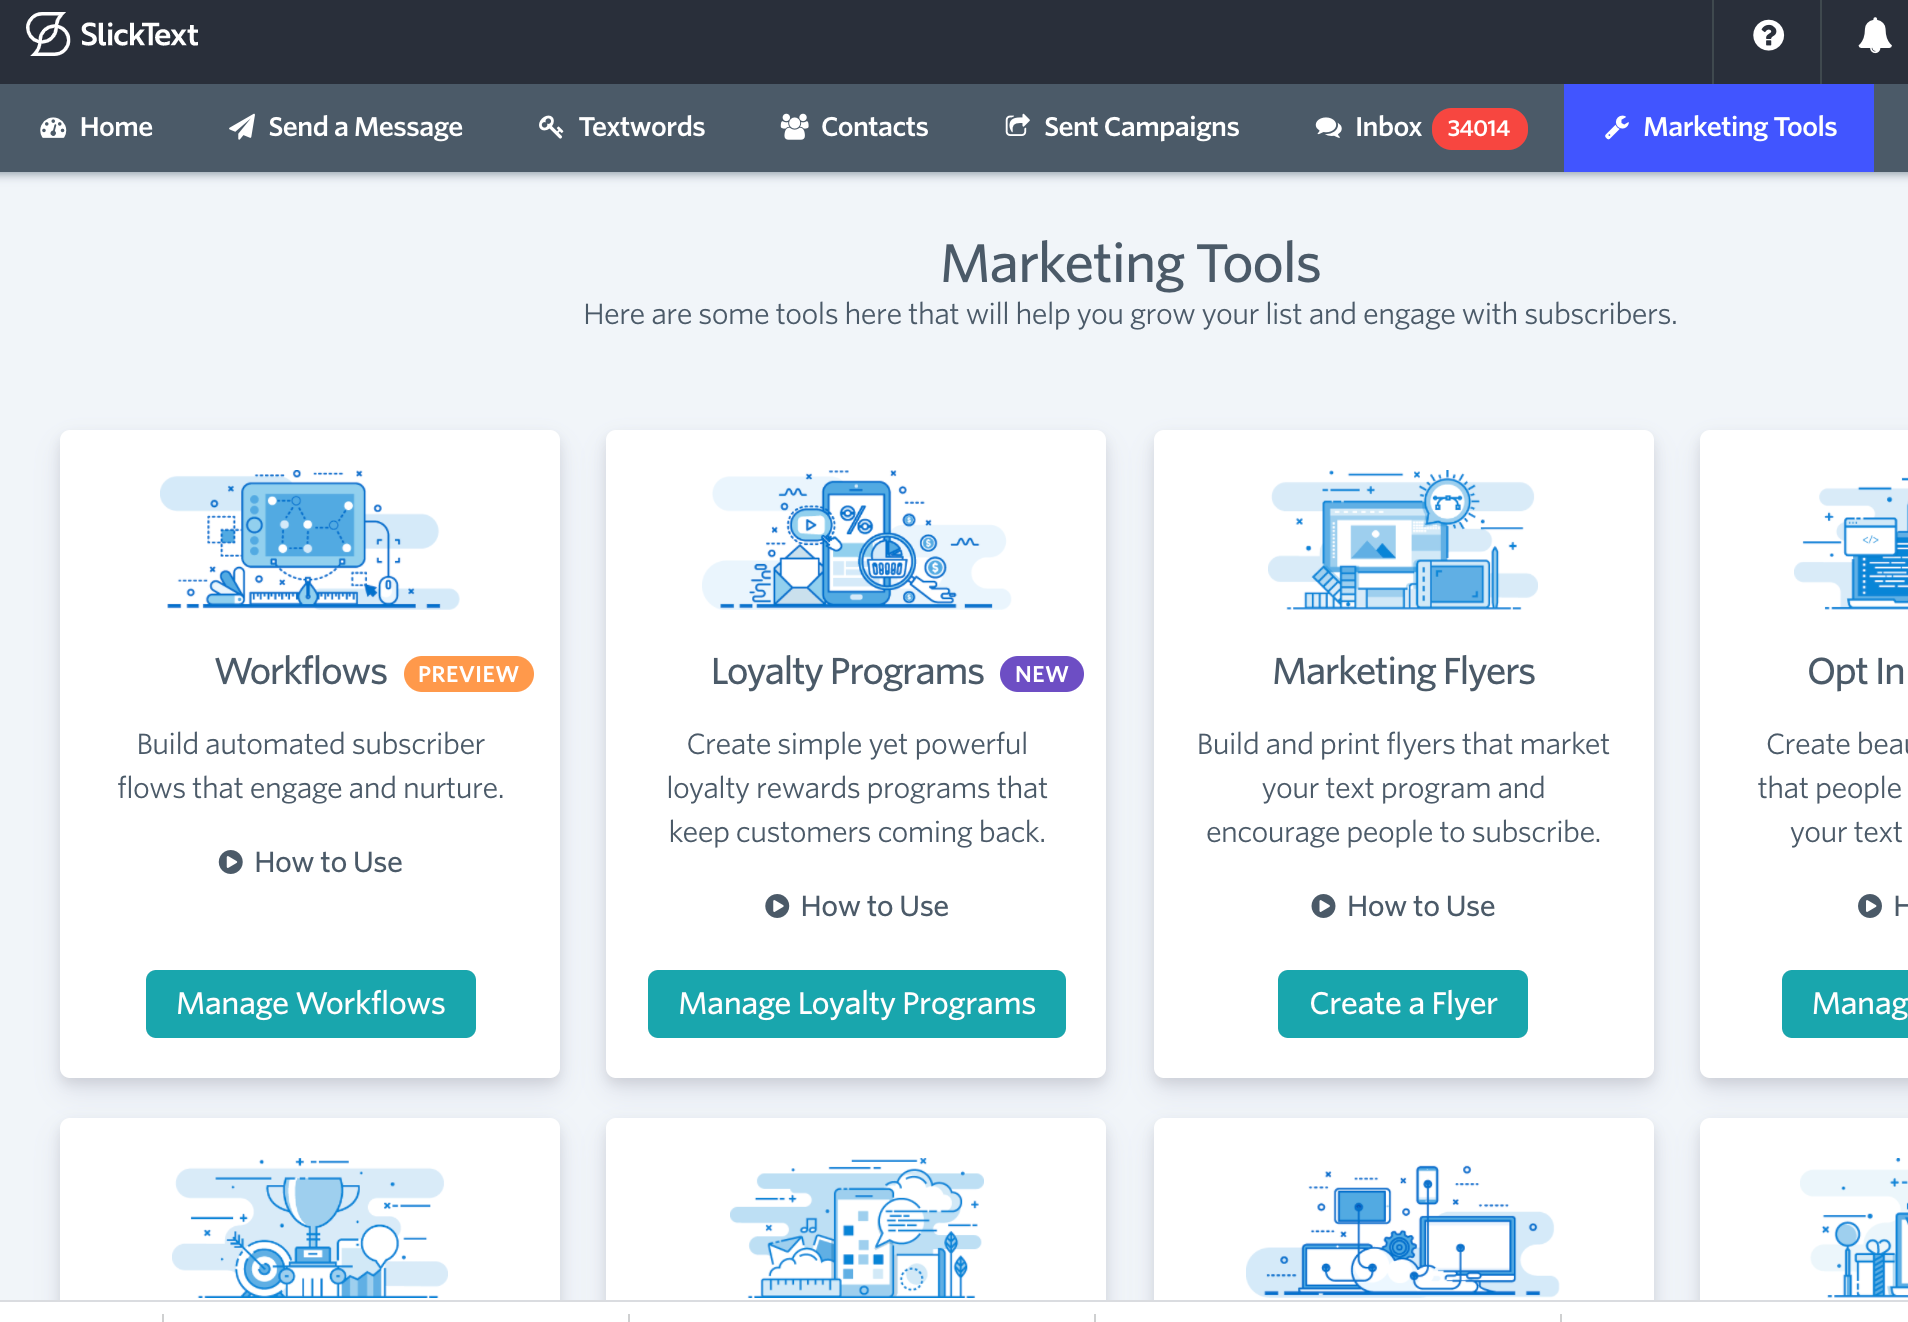 """There are over 200 features within SlickText that help you create custom text messaging campaigns. You can easily locate and select the features you want to use in the """"Marketing Tools"""" tab."""